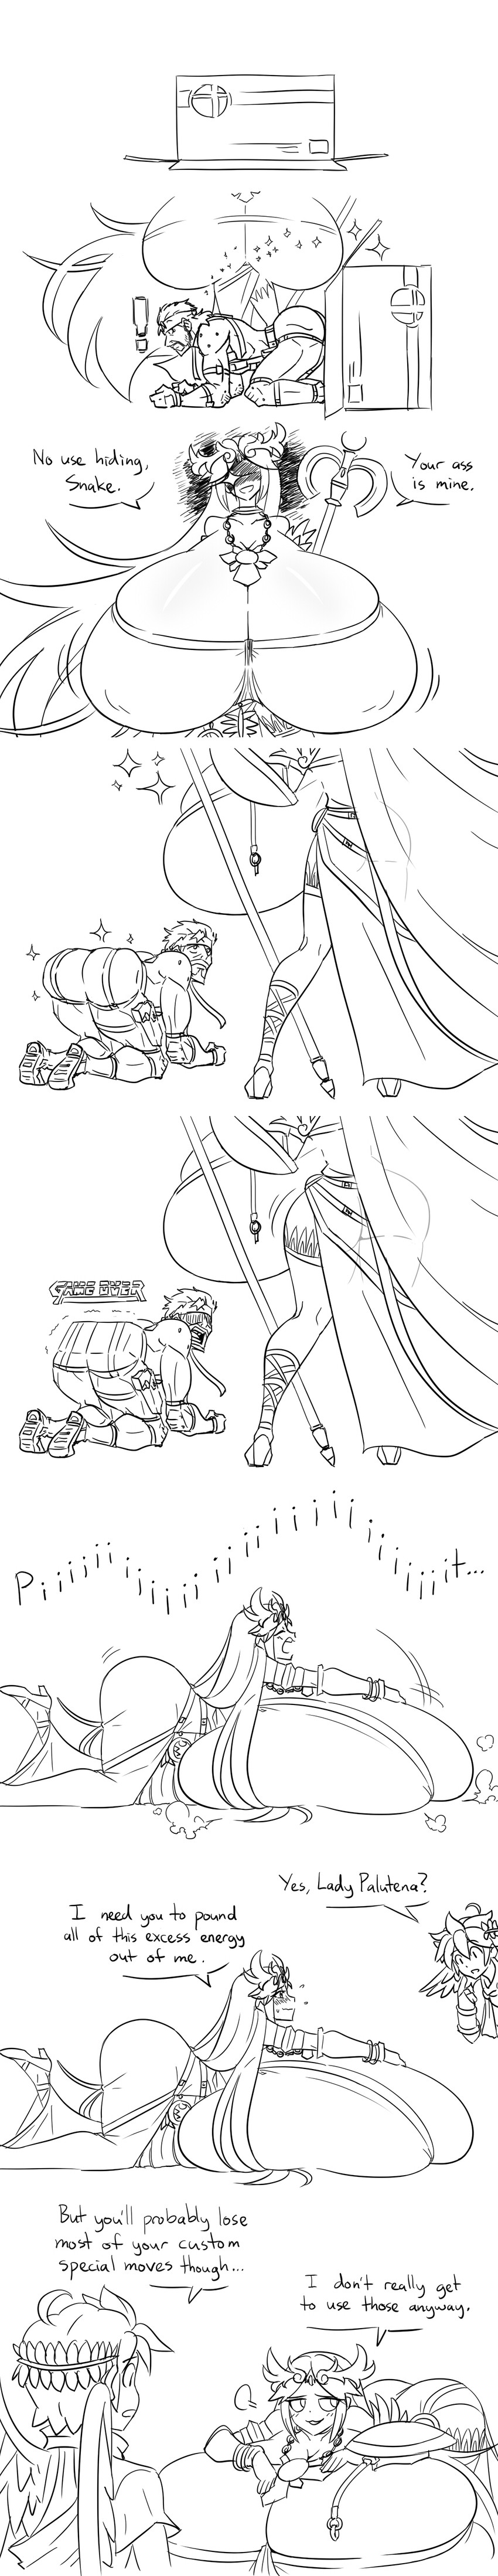 palutena, pit, and solid snake (kid icarus, metal gear (series), metal gear solid, super smash bros., and super smash bros ultimate) drawn by matsu-sensei